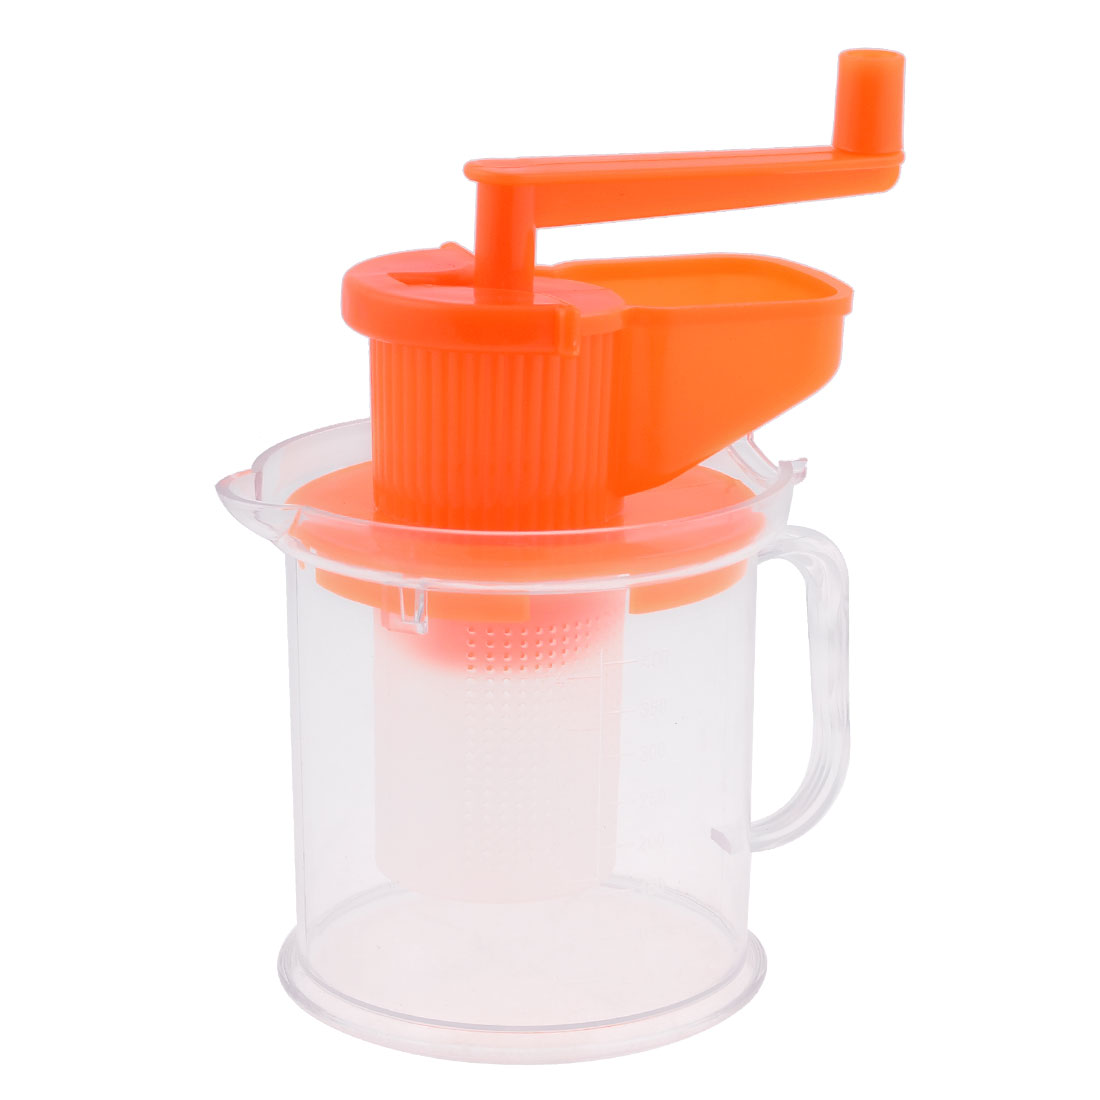 Kitchen Home Portable Orange Handle Clear Column Plastic Soybeans Grinder